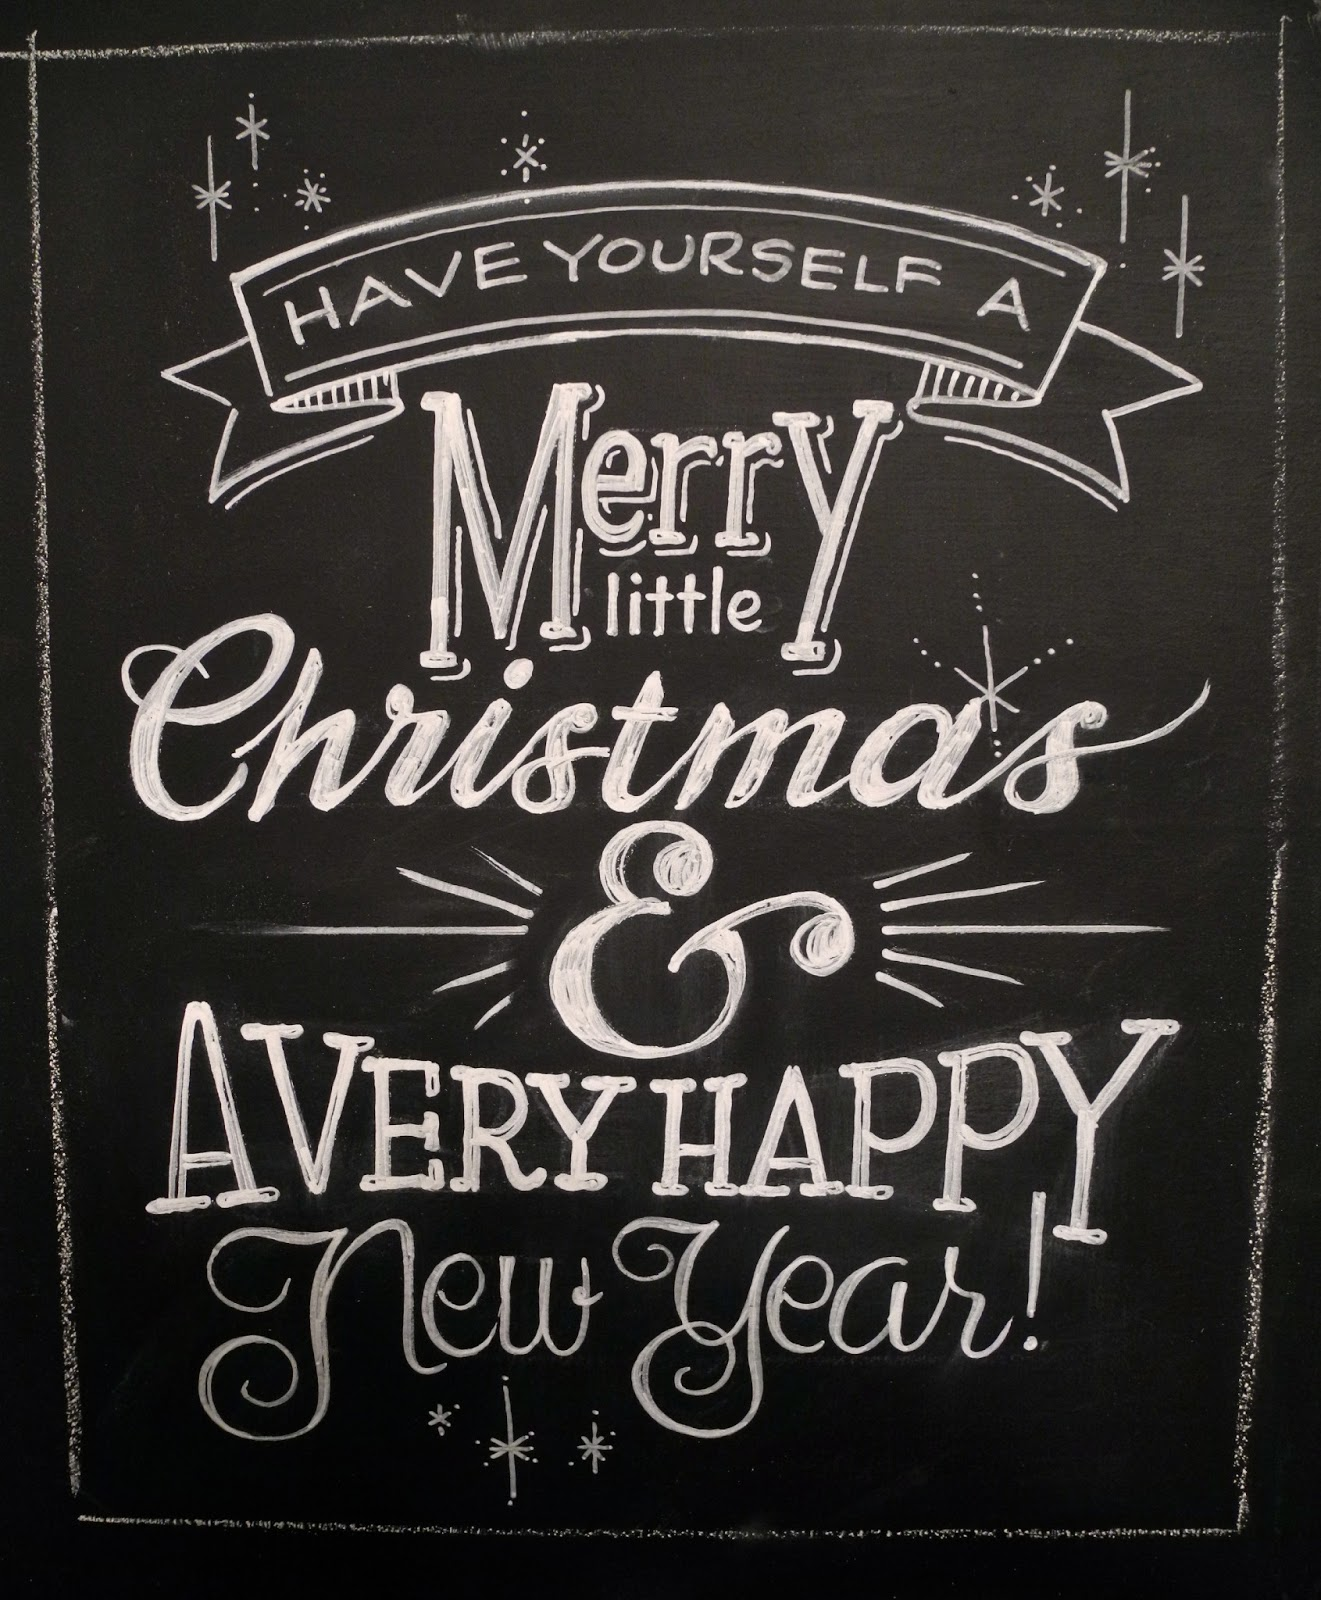 After Hour Stock Quotes: 16 Chalkboard Christmas Font Images